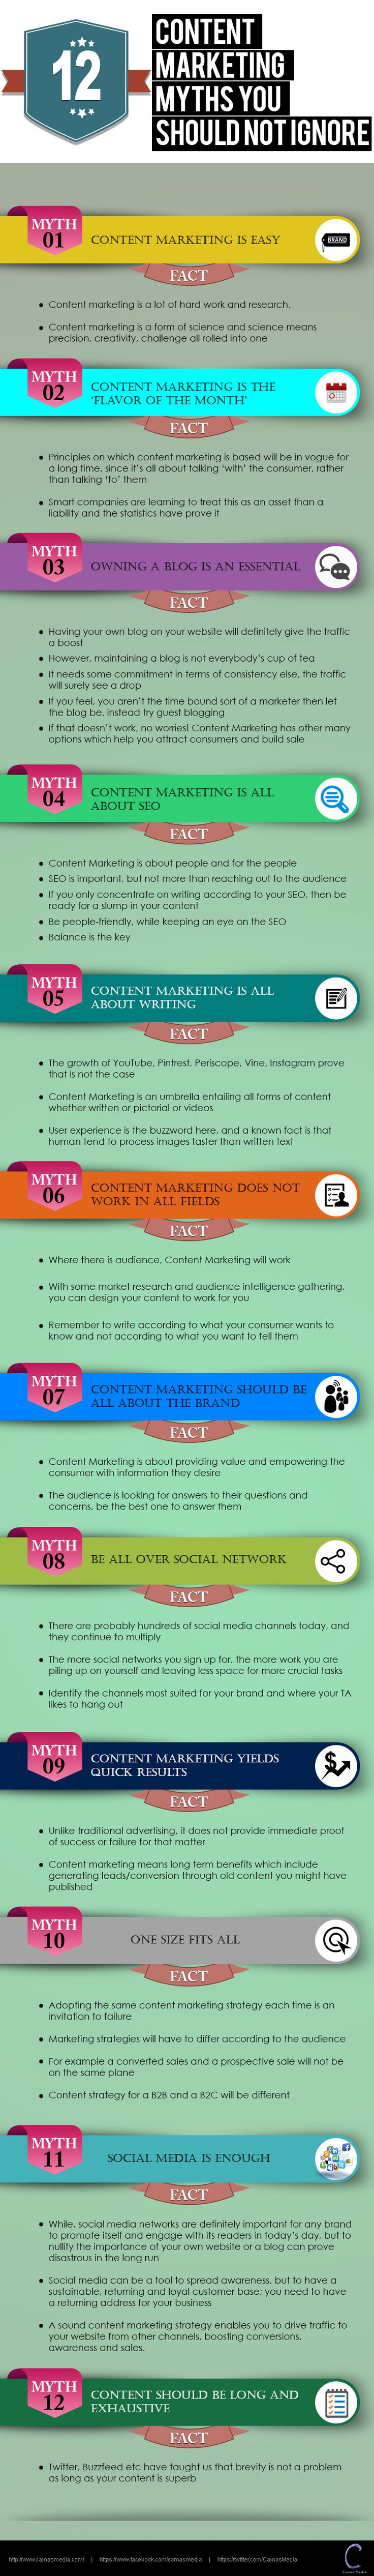 12 #ContentMarketing Myths You Should Not Ignore and Why